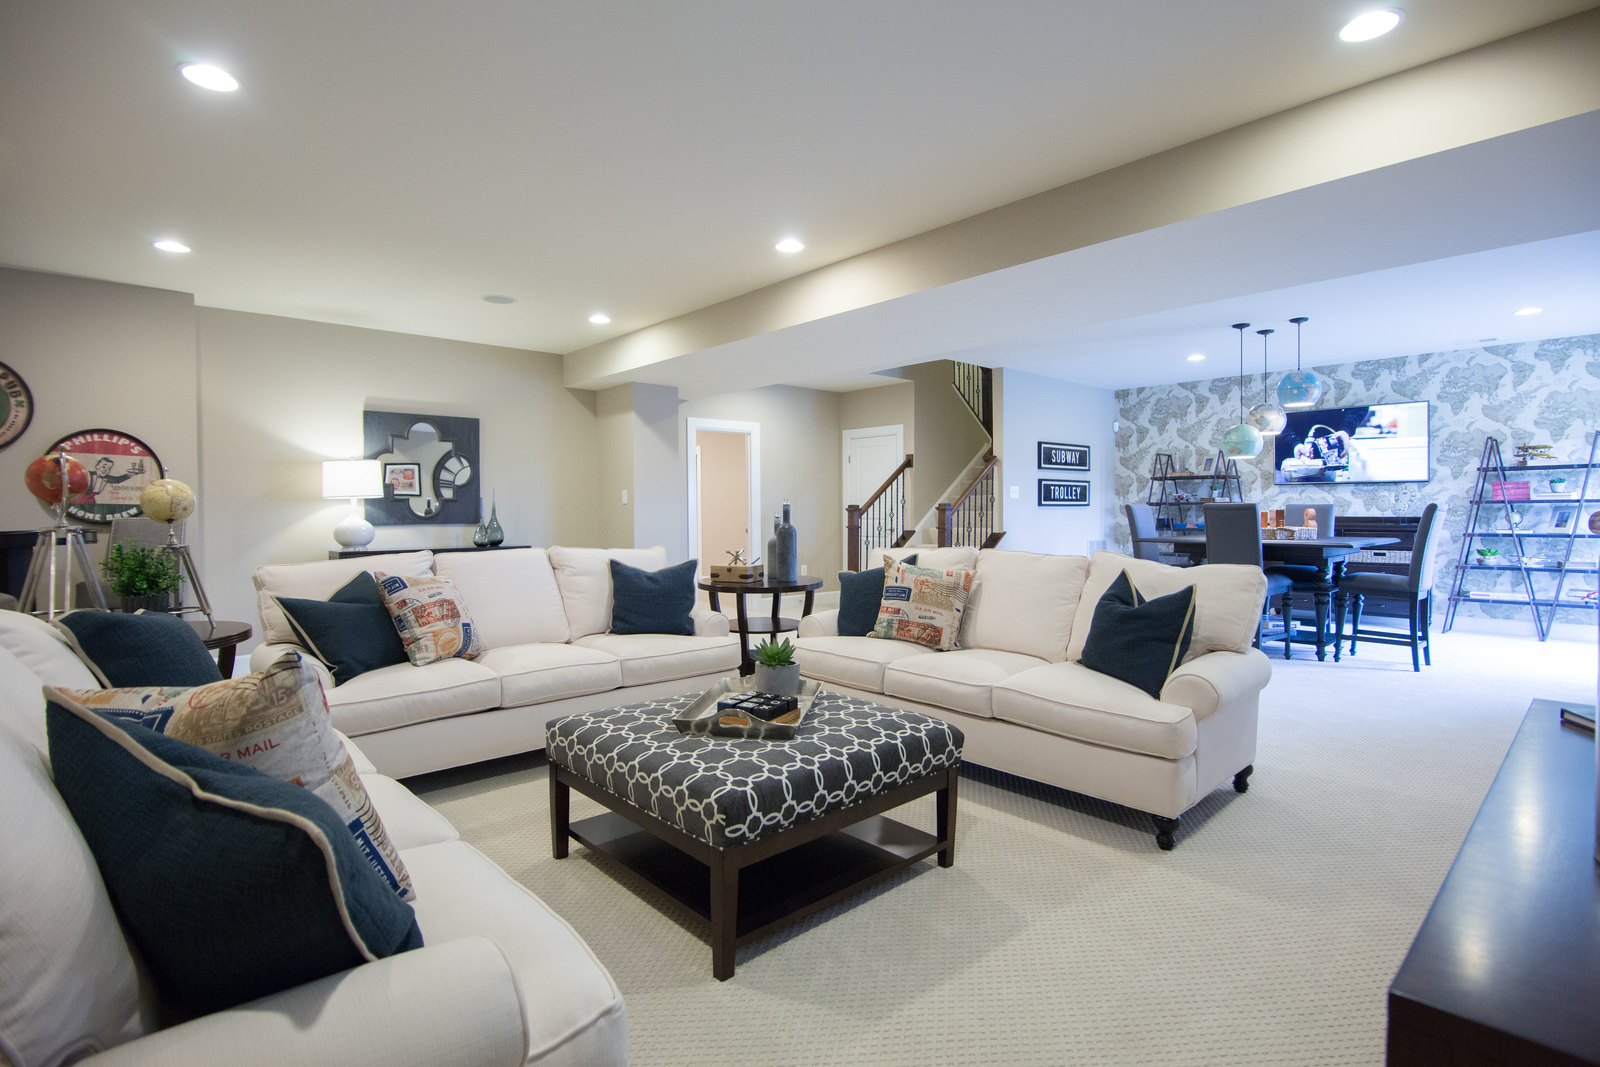 Finish your basement for additional space - create the entertainment room you've always dreamed of having